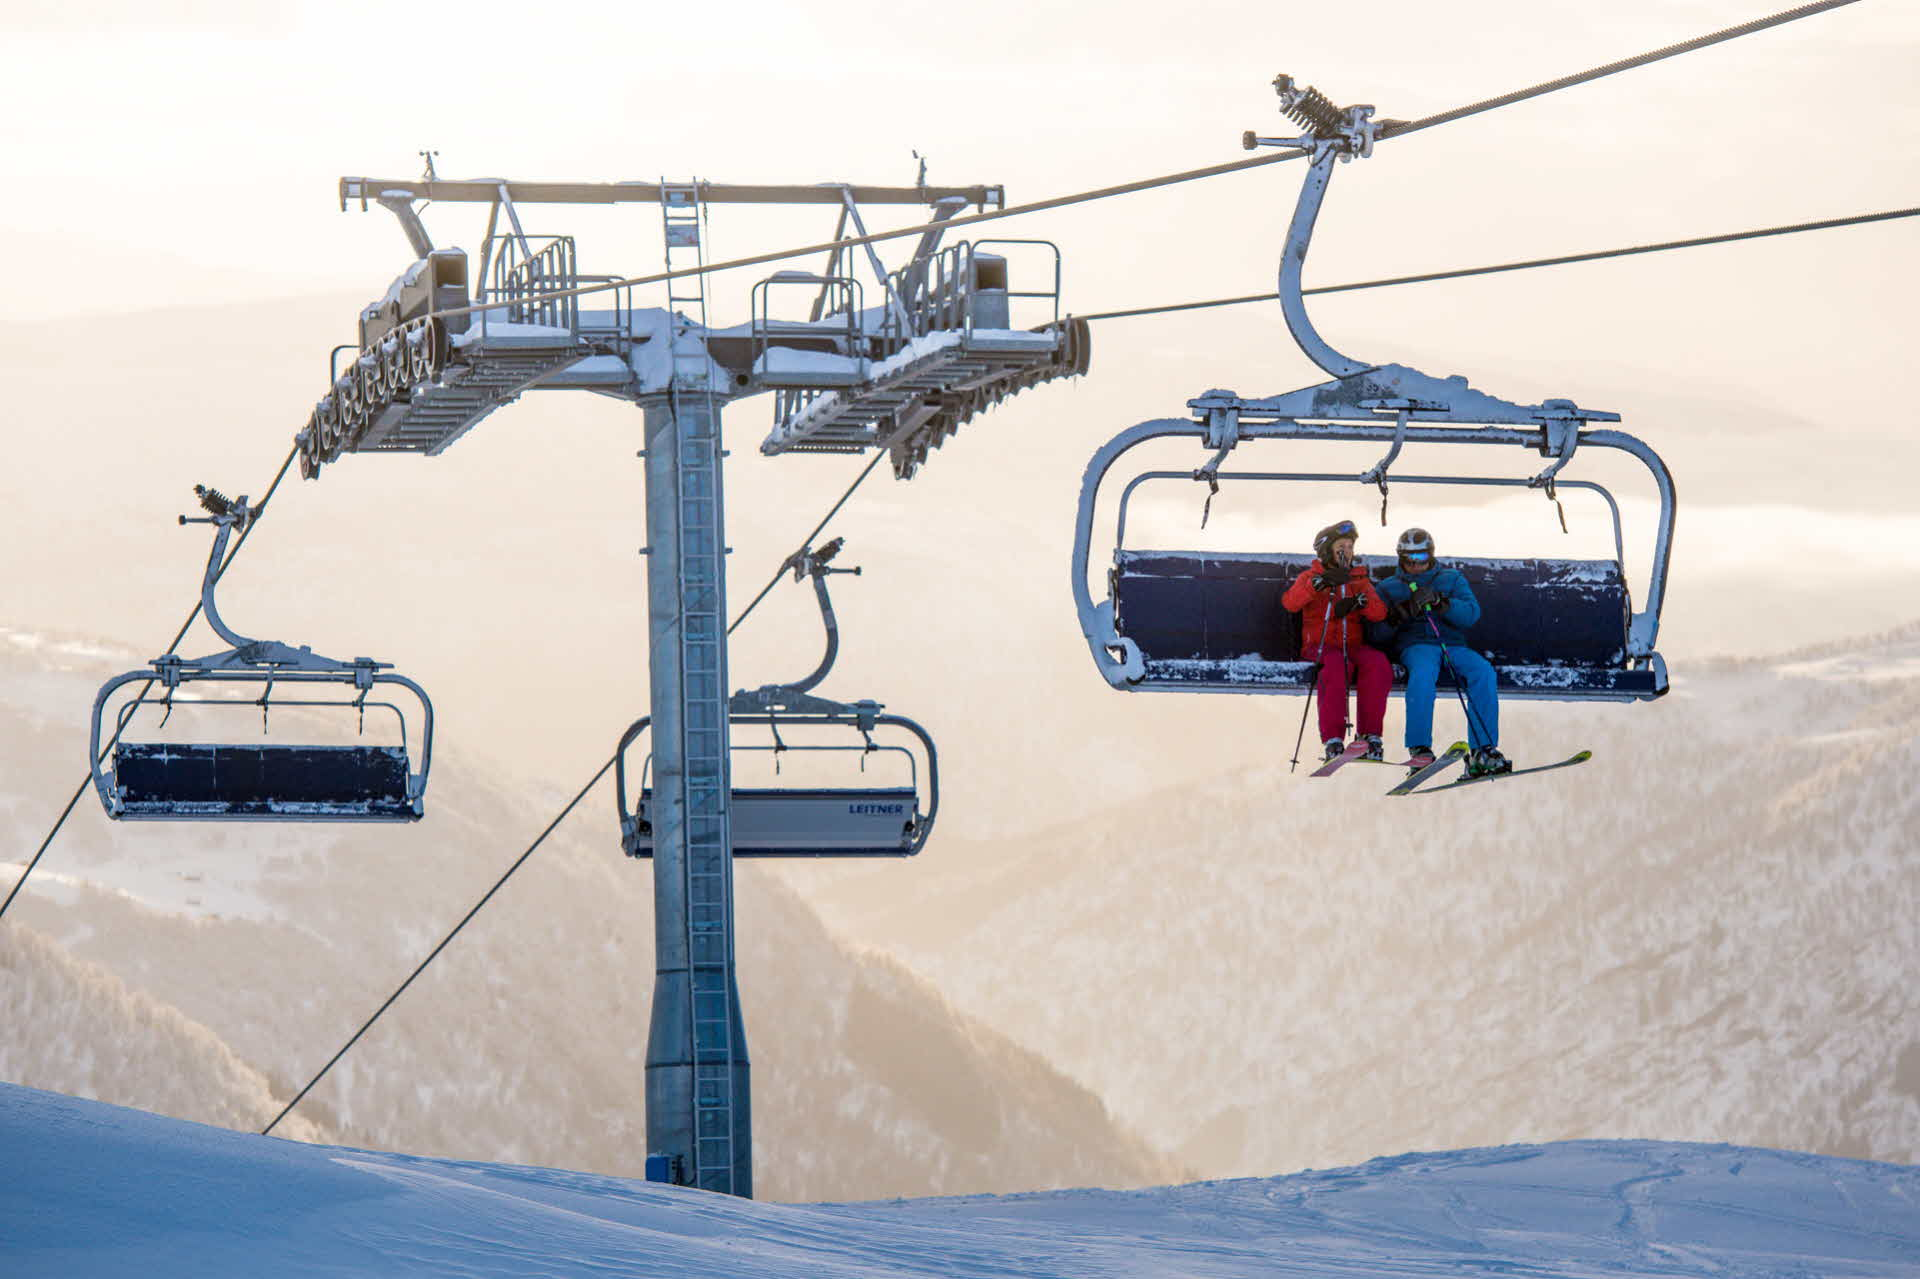 2 people in alpine downhill gear sitting in ski lift in Myrkdalen Ski Resort surrounded by snowy mountains